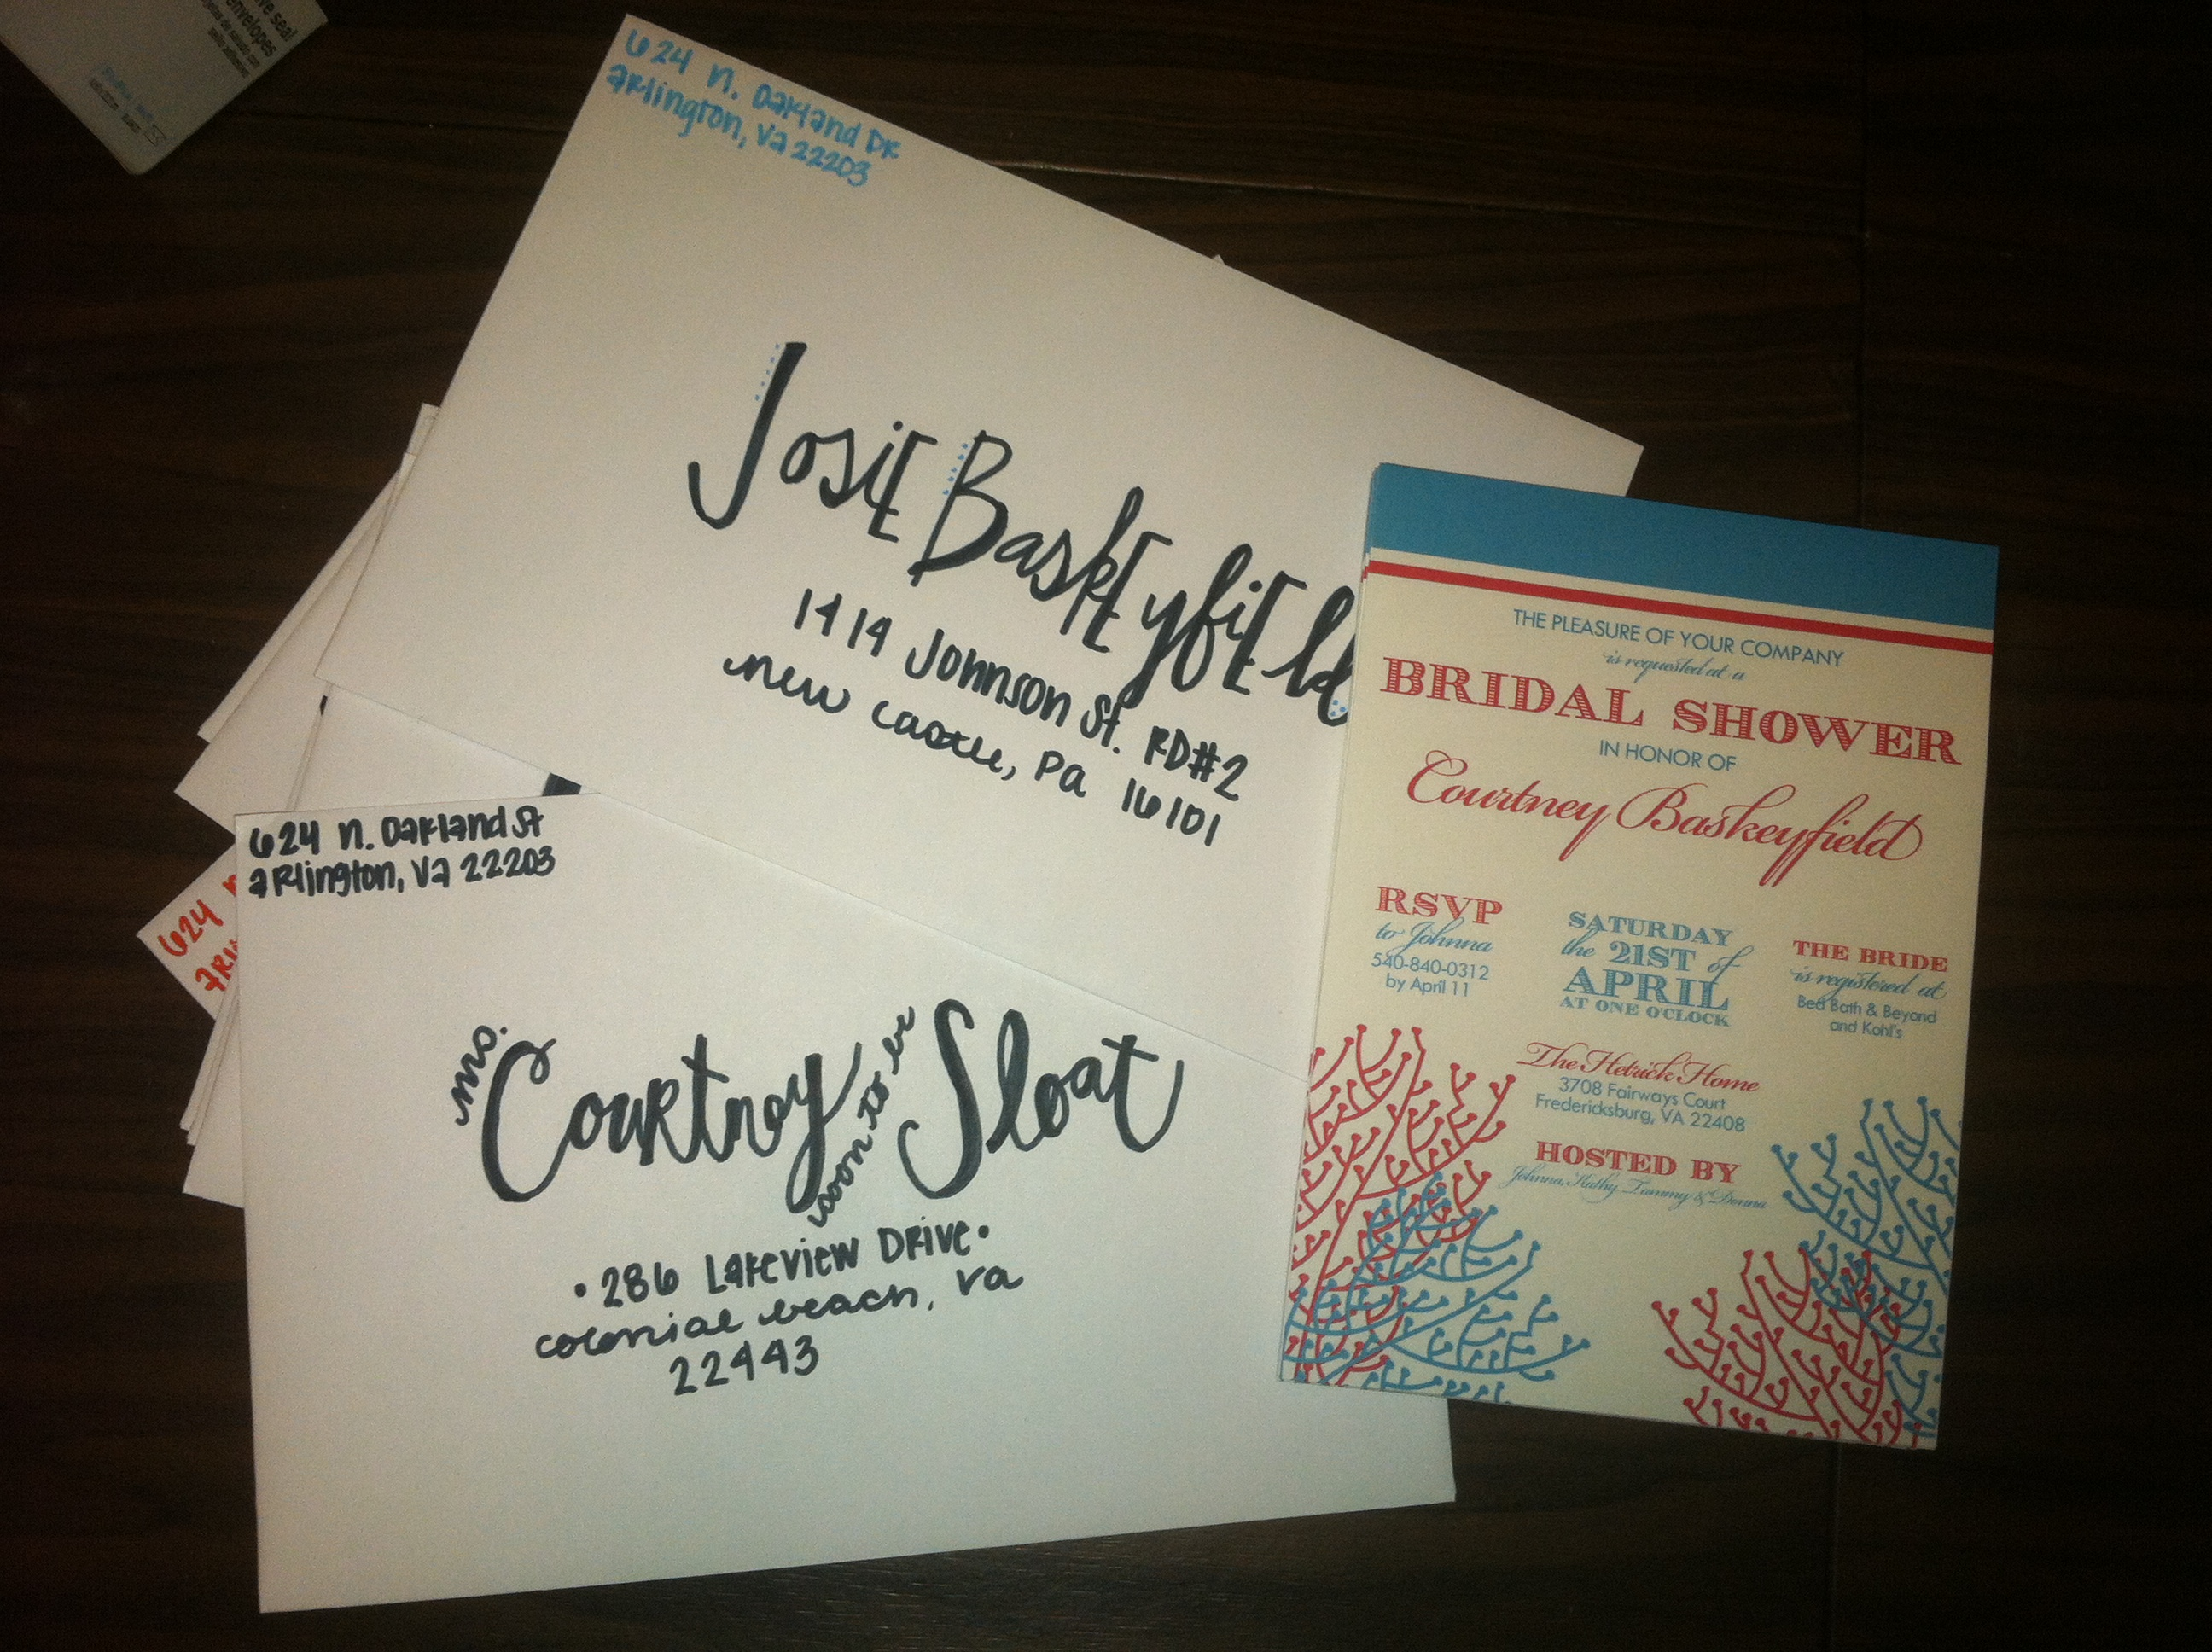 Bridal Shower Invitations Twila Co – How to Address Wedding Shower Invitations